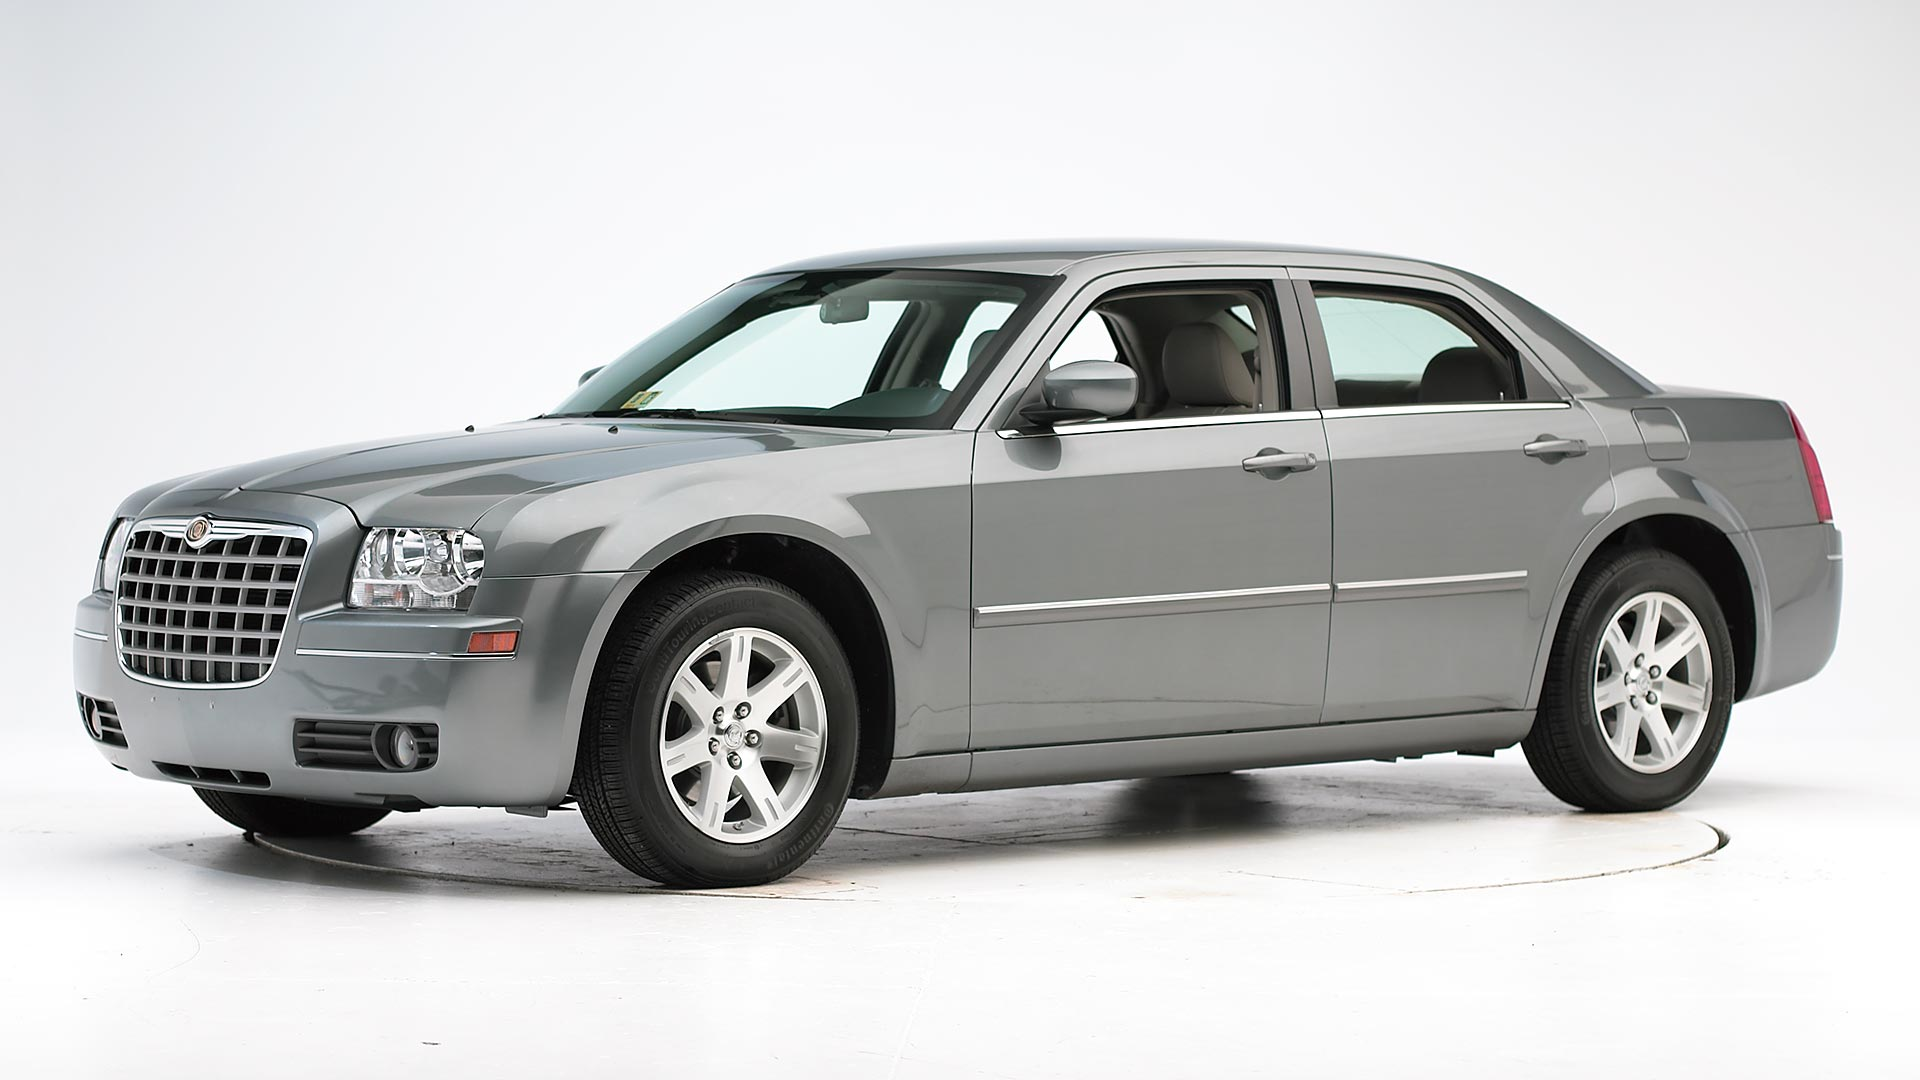 2010 Chrysler 300 4-door sedan